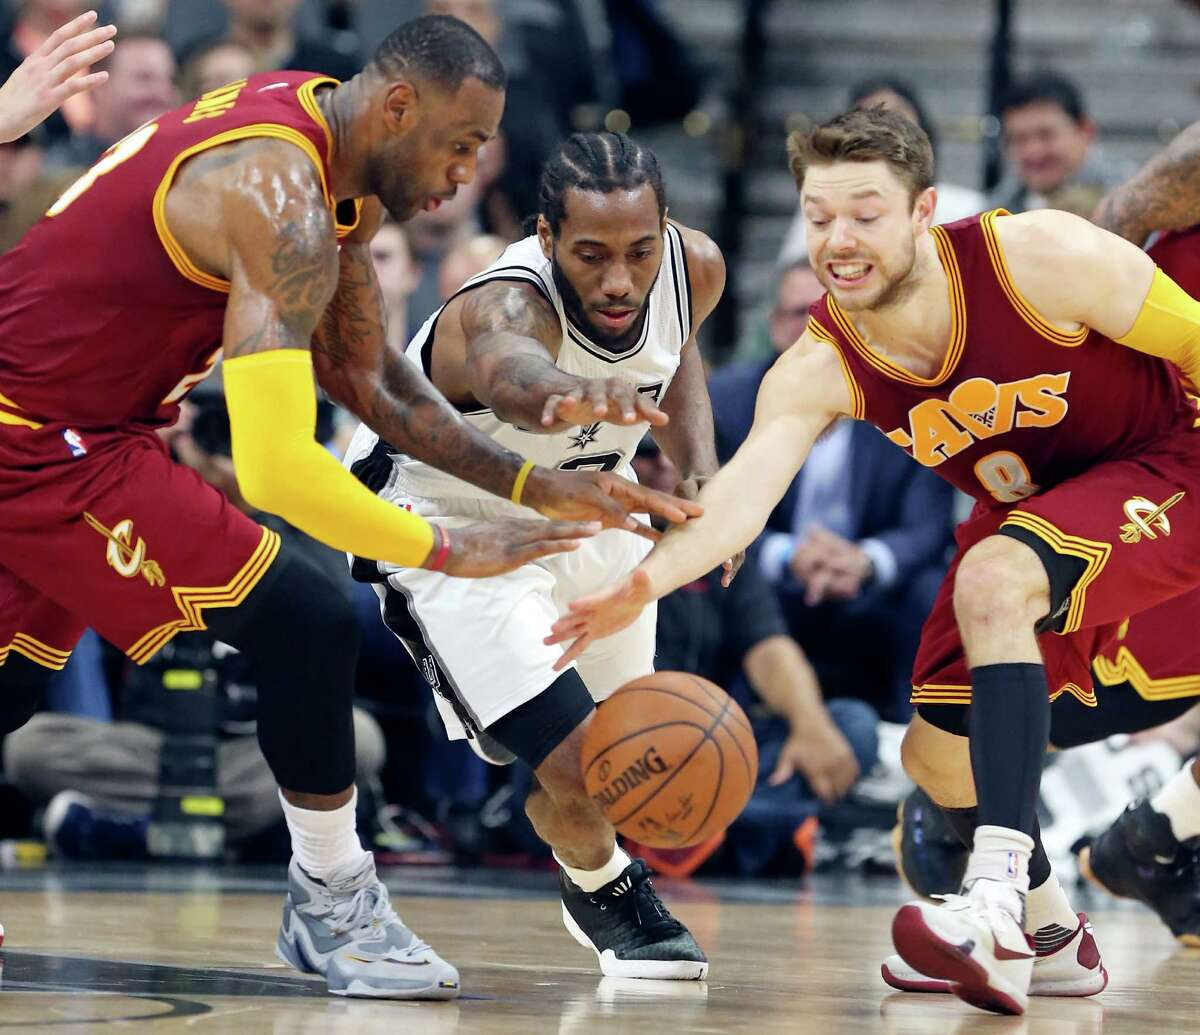 Cleveland Cavaliers' LeBron James (from left), San Antonio Spurs' Kawhi Leonard, and Cleveland Cavaliers' Matthew Dellavedova grab for a loose ball during first half action Thursday Jan. 14, 2016 at the AT&T Center.